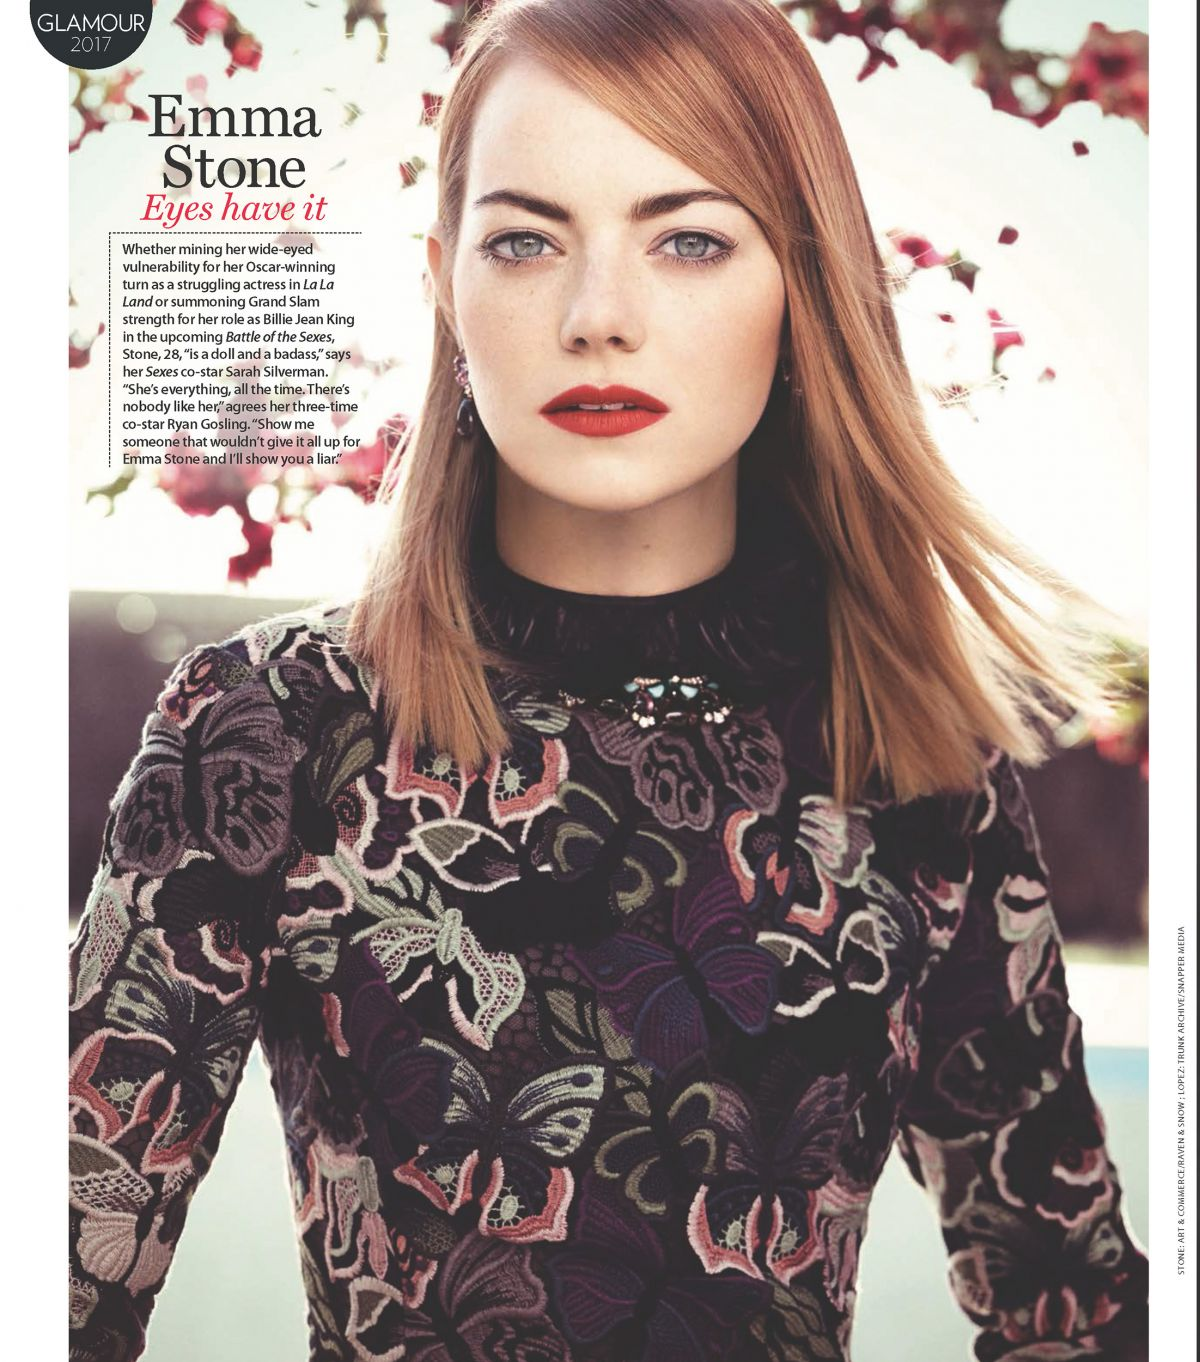 EMMA STONE for Who Magazine, Glamour Issue 2017